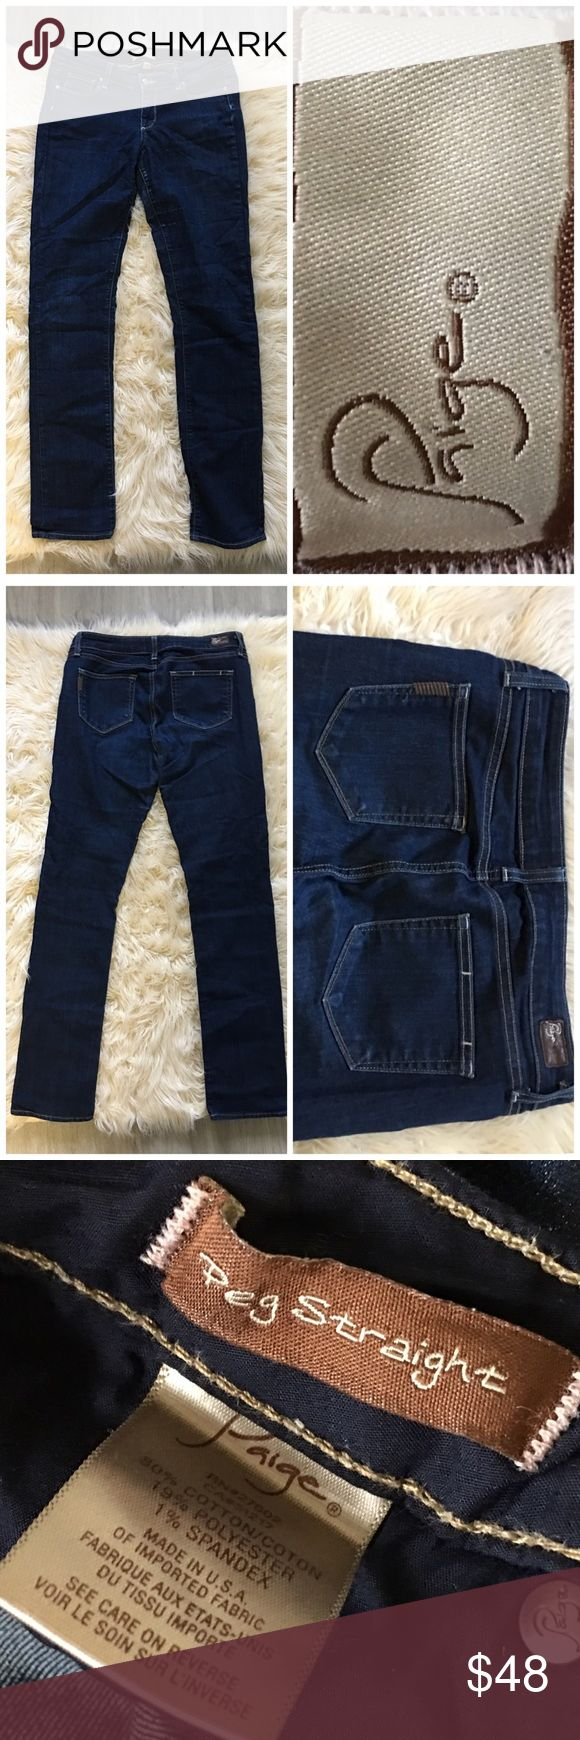 """Paige Denim Medium/Dark Wash Peg Straight Jeans Paige Denim Medium/Dark Wash Peg Straight Jeans. Size 29! Thank you for looking at my listing. Please feel free to comment with any questions (no trades/modeling).  •Inseam: 33""""  •Condition: VGUC. No holes or stains!   ✨Bundle and save!✨10% off 2 items, 20% off 3 items & 30% off 5+ items! AA Paige Jeans Jeans Straight Leg"""